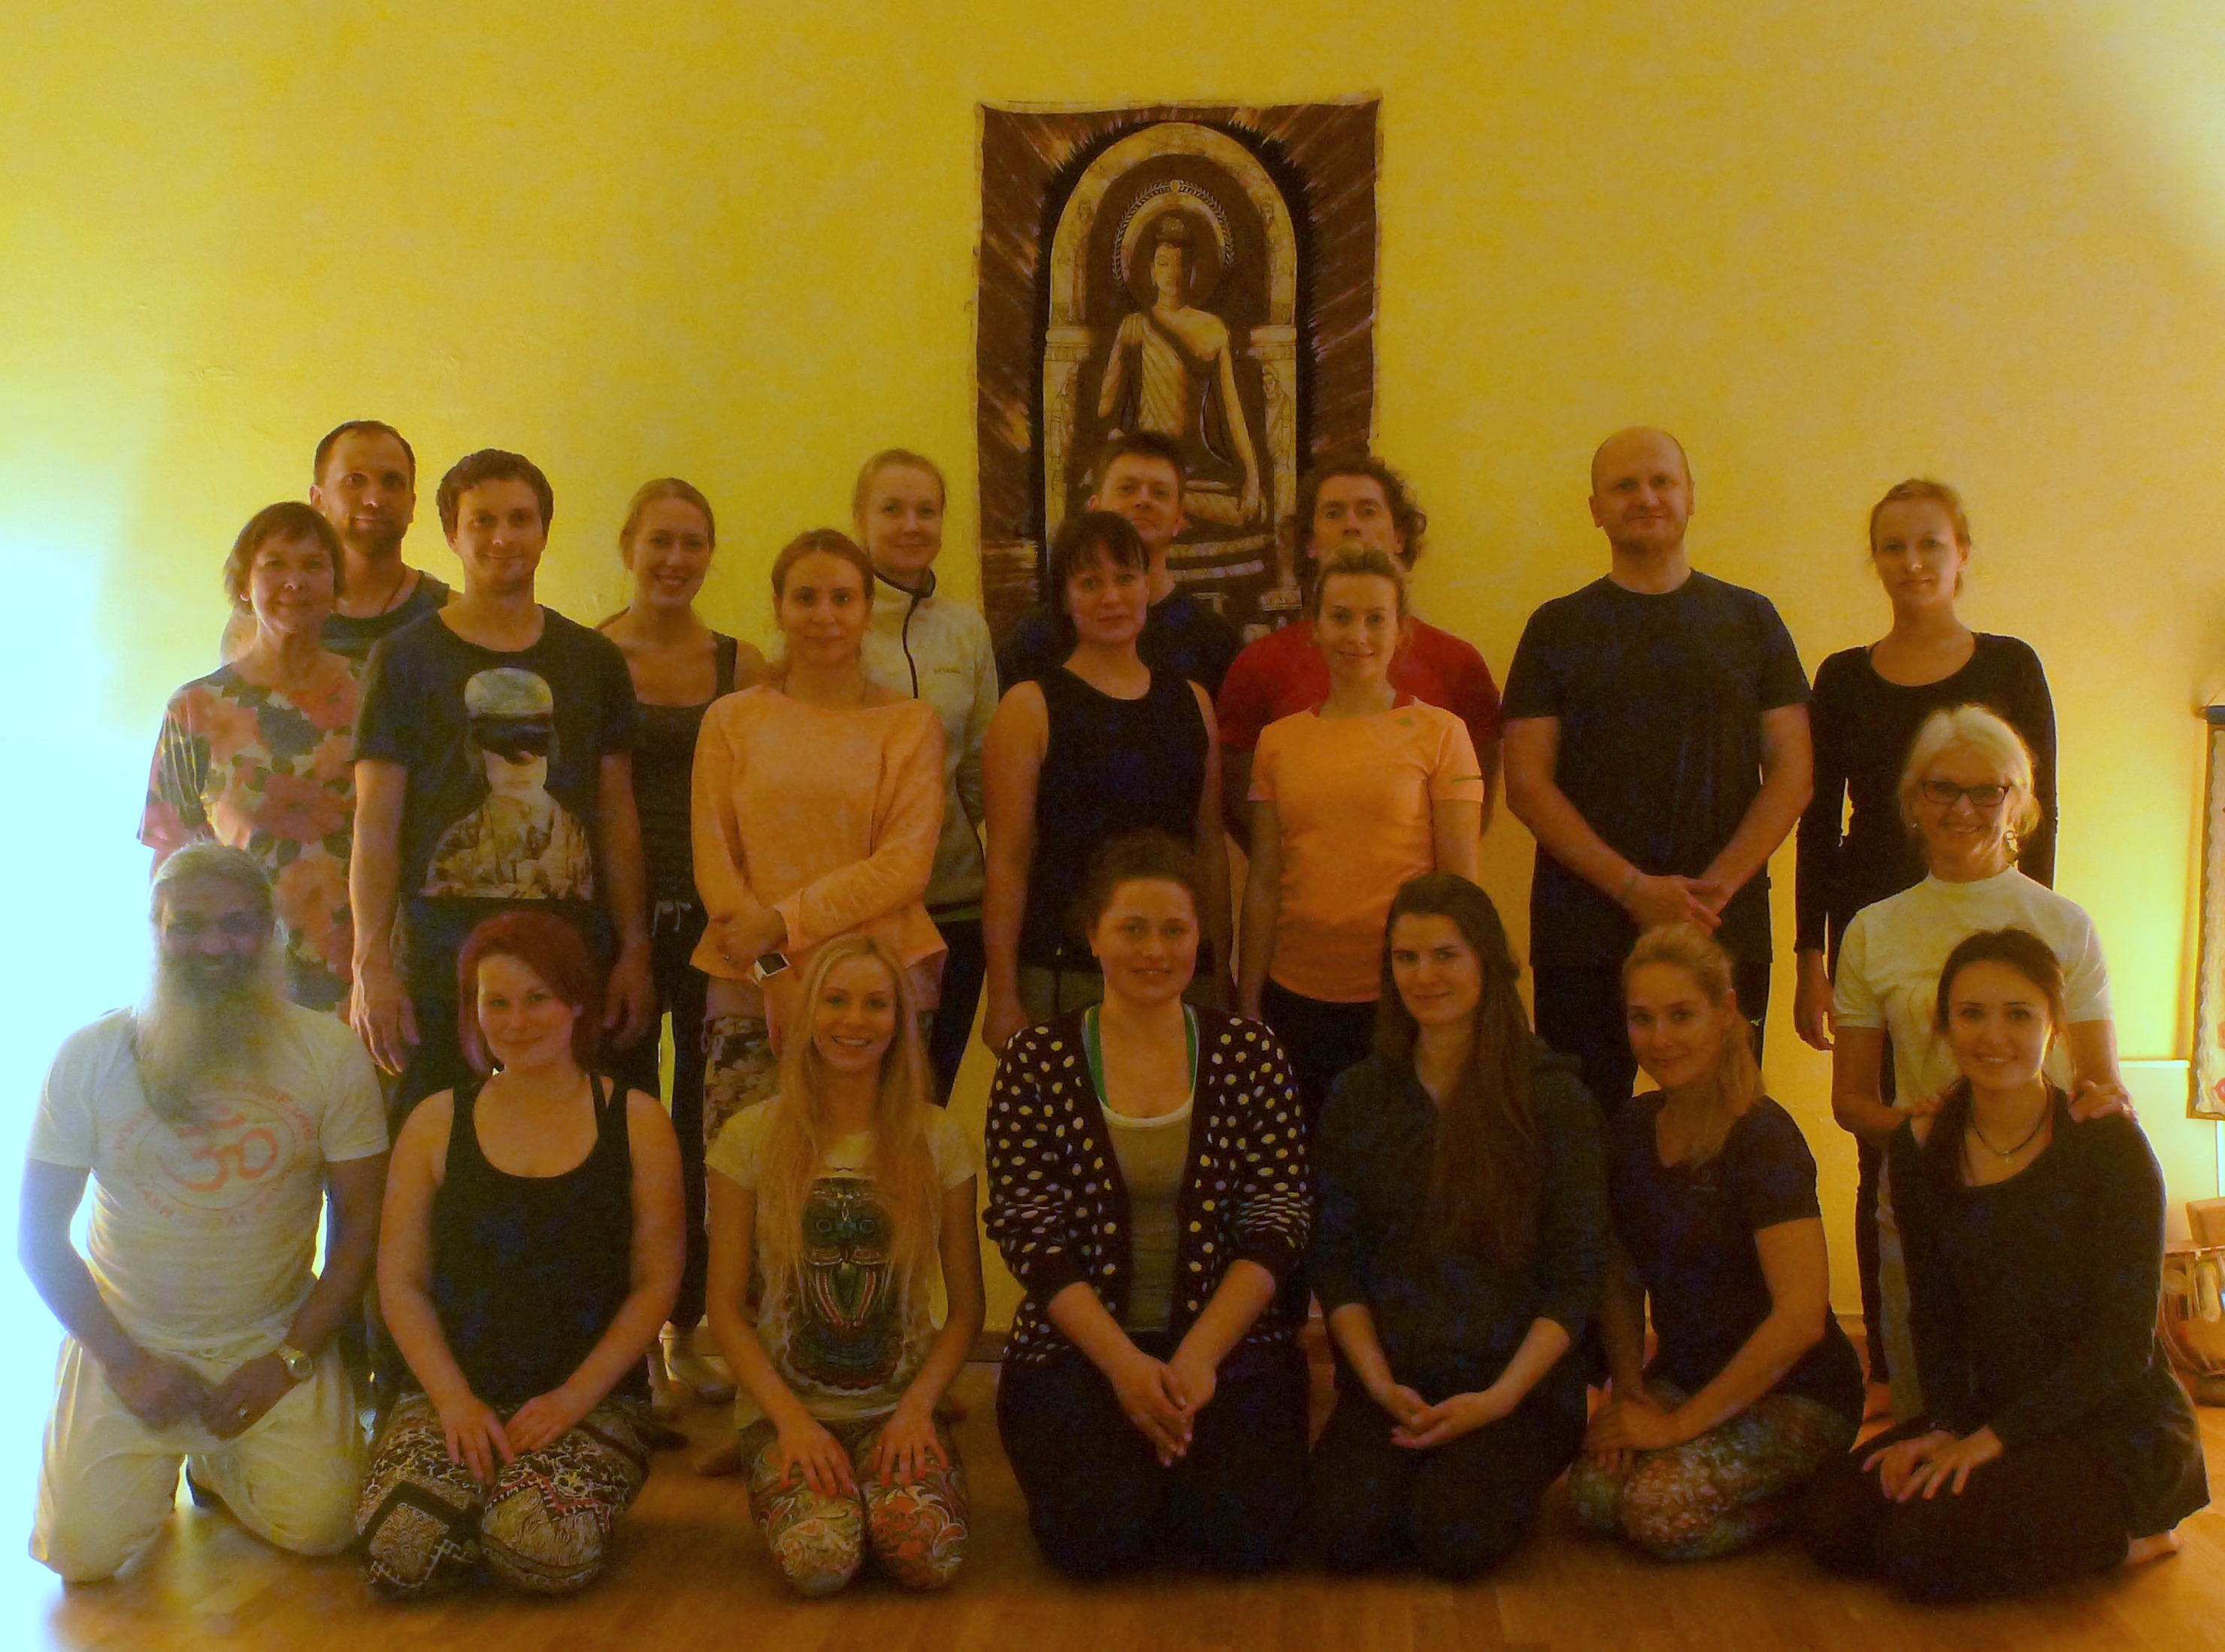 Yogi Sivadas & Yoga workshop students in Tallinn Estonia February 2016,